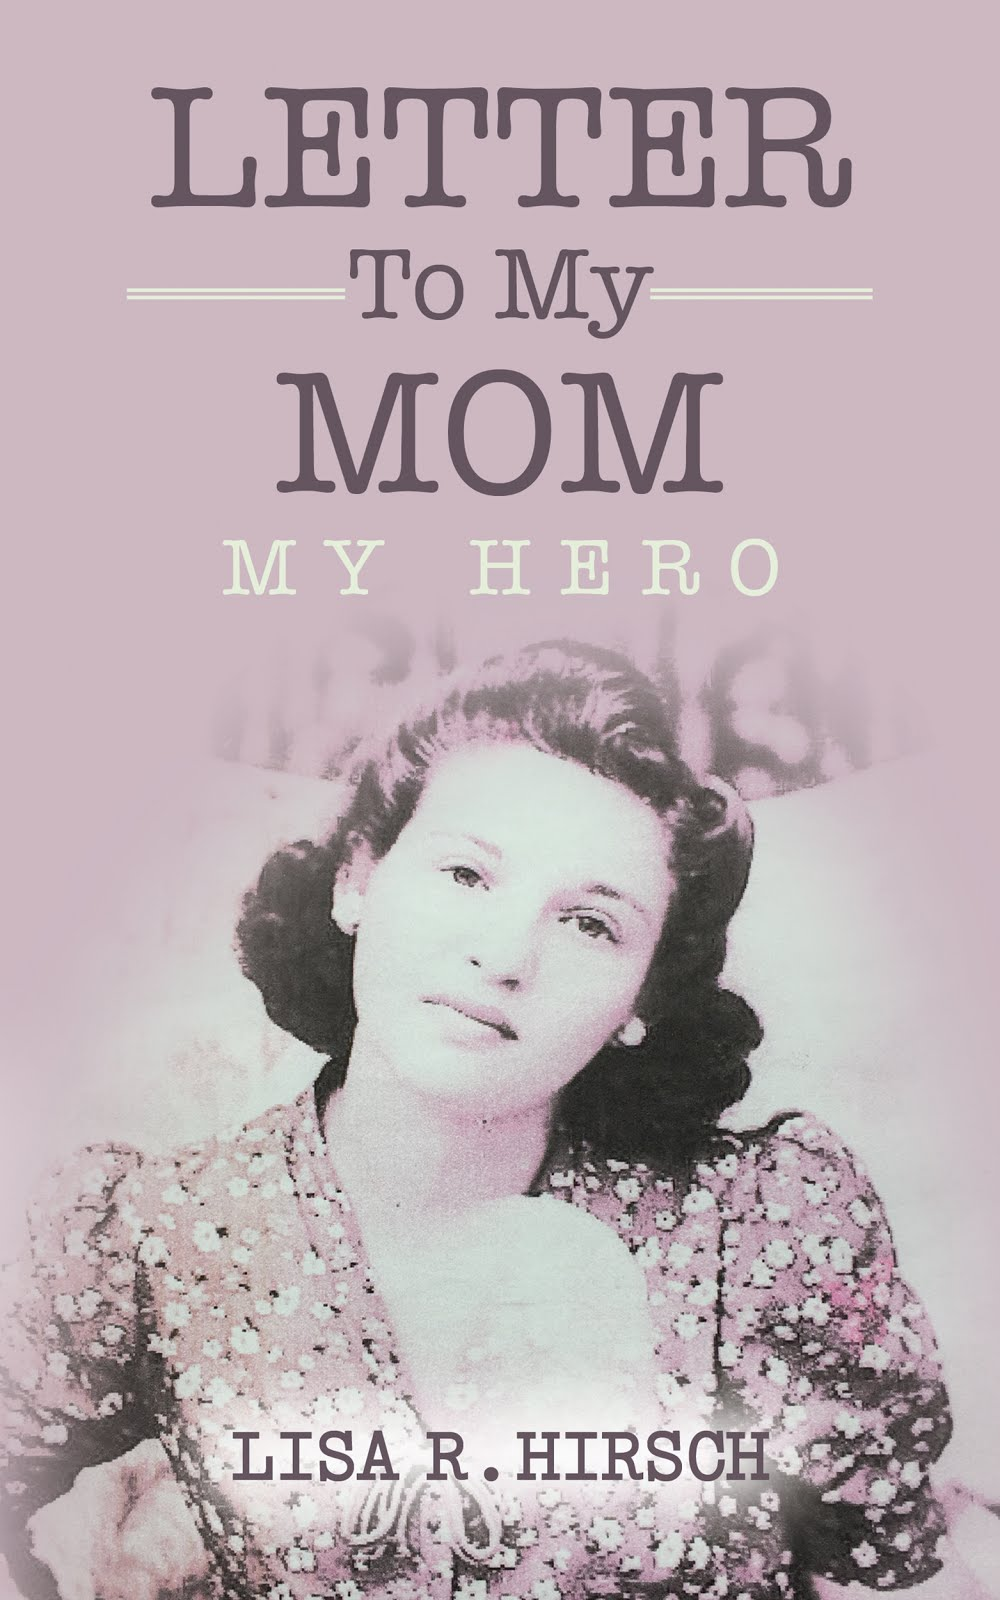 Book Letter To My Mom, My Hero